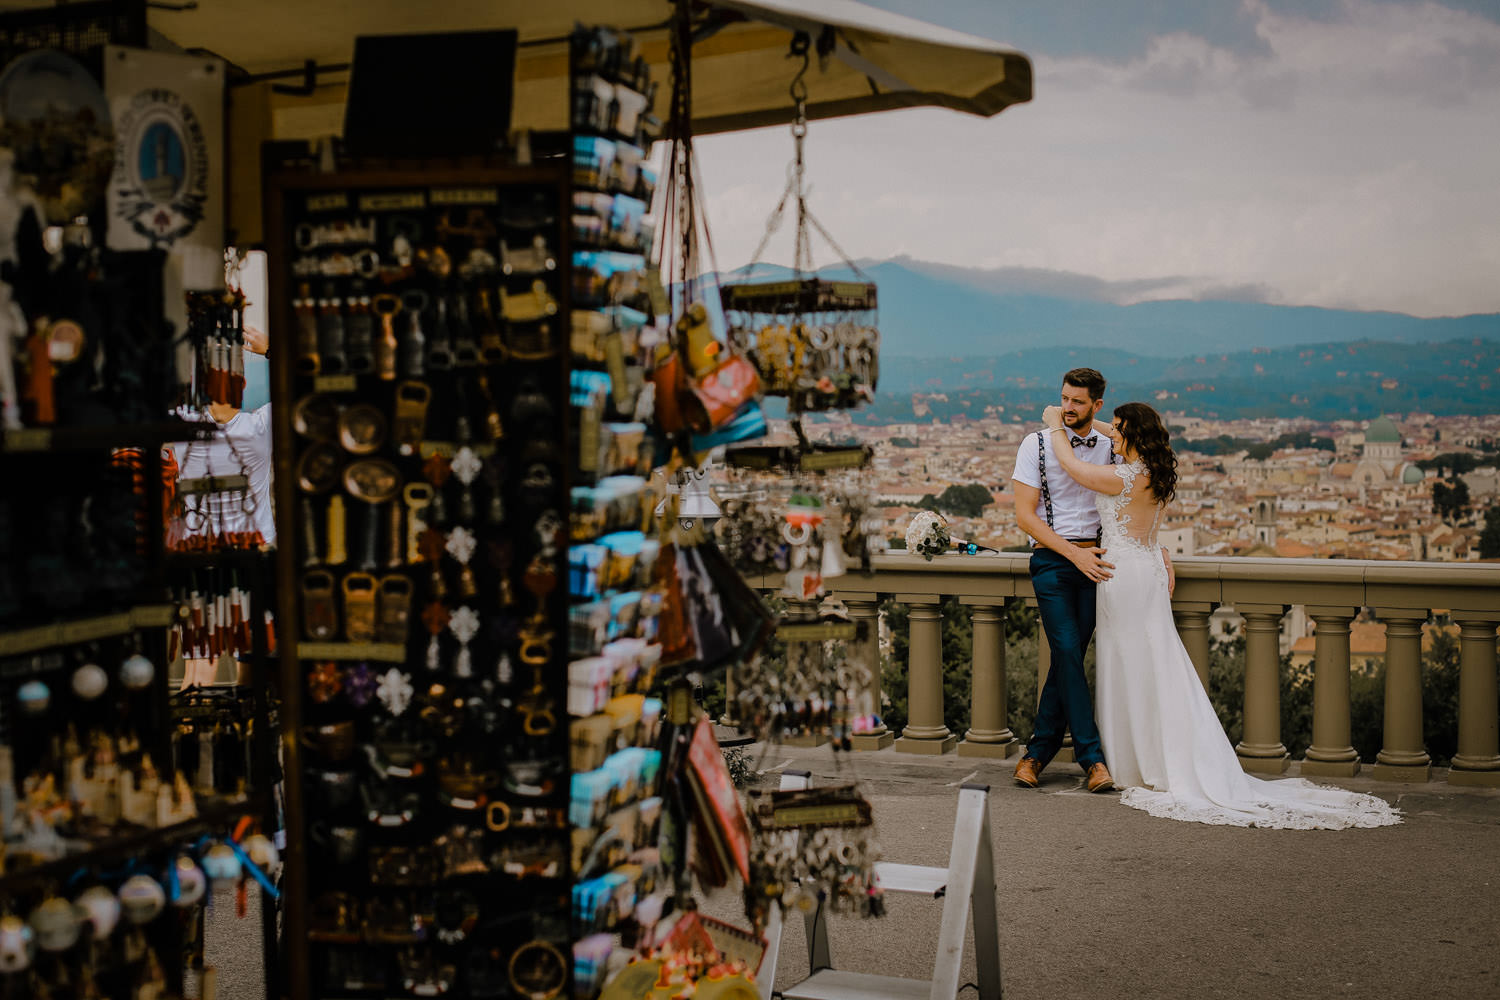 Souvenir shop in Florence with bride and groom on wedding day